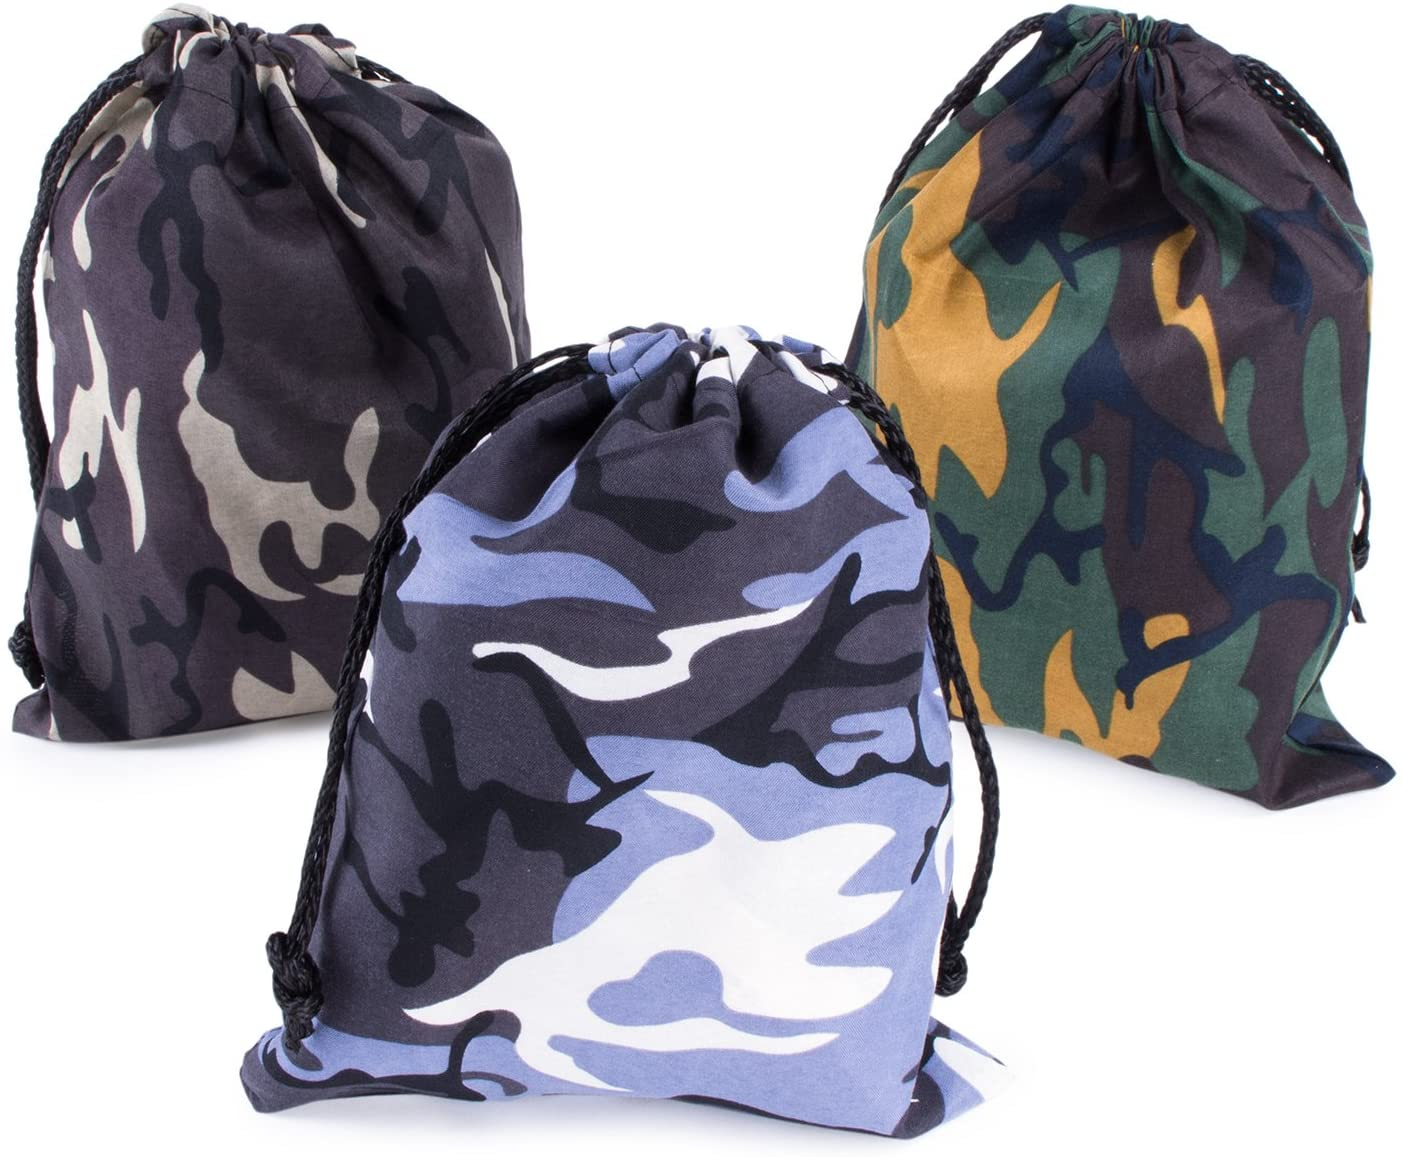 Camouflage Drawstring Travel Bags Pouch Sacks for Party Favors, Outdoor Camping Picnics, Hiking (24 Pack)